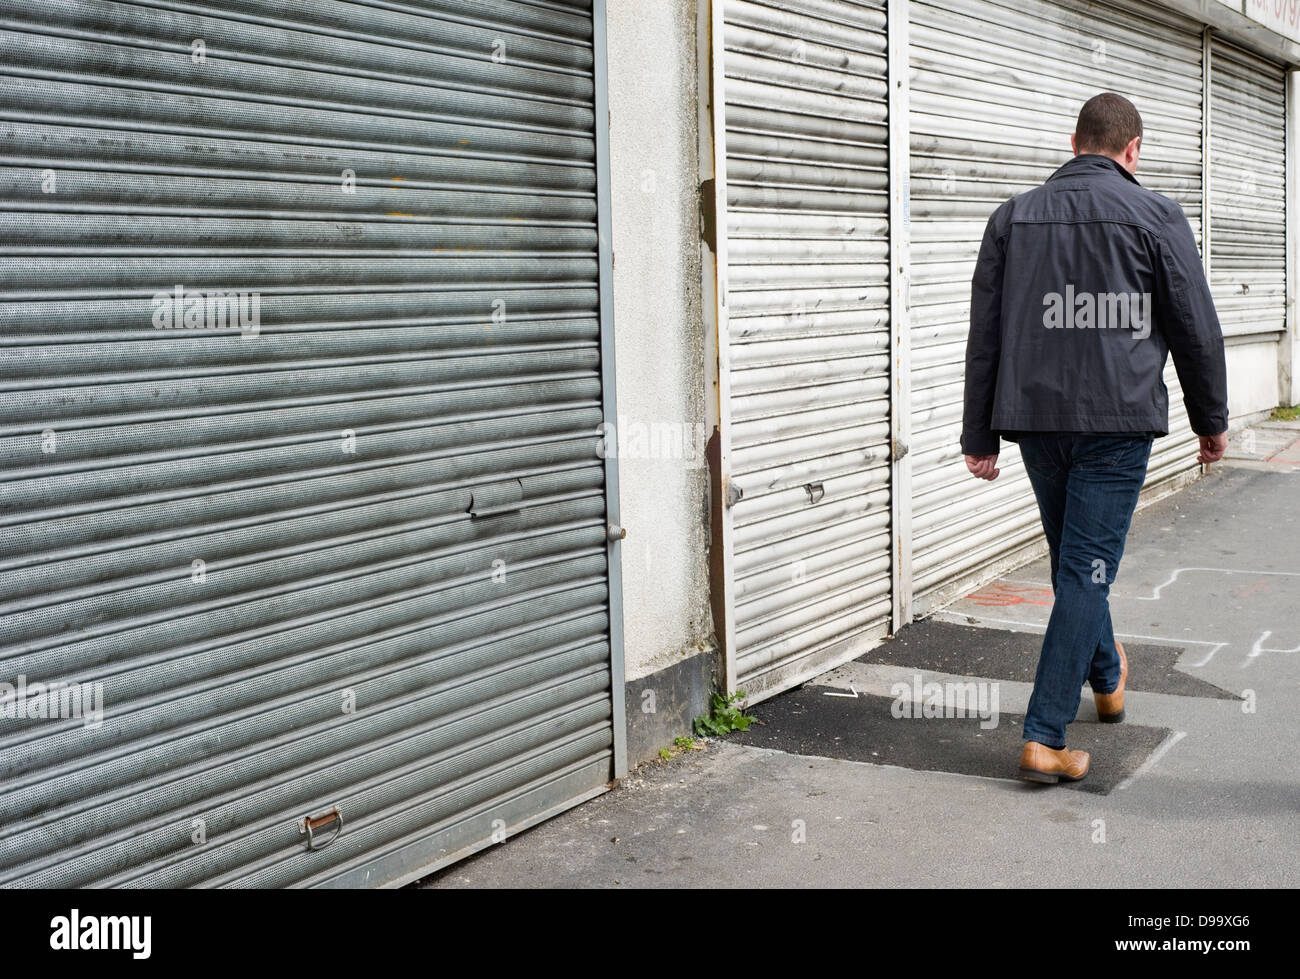 A man walking past a row of closed down shops in Stretford, Manchester, England, UK Stock Photo